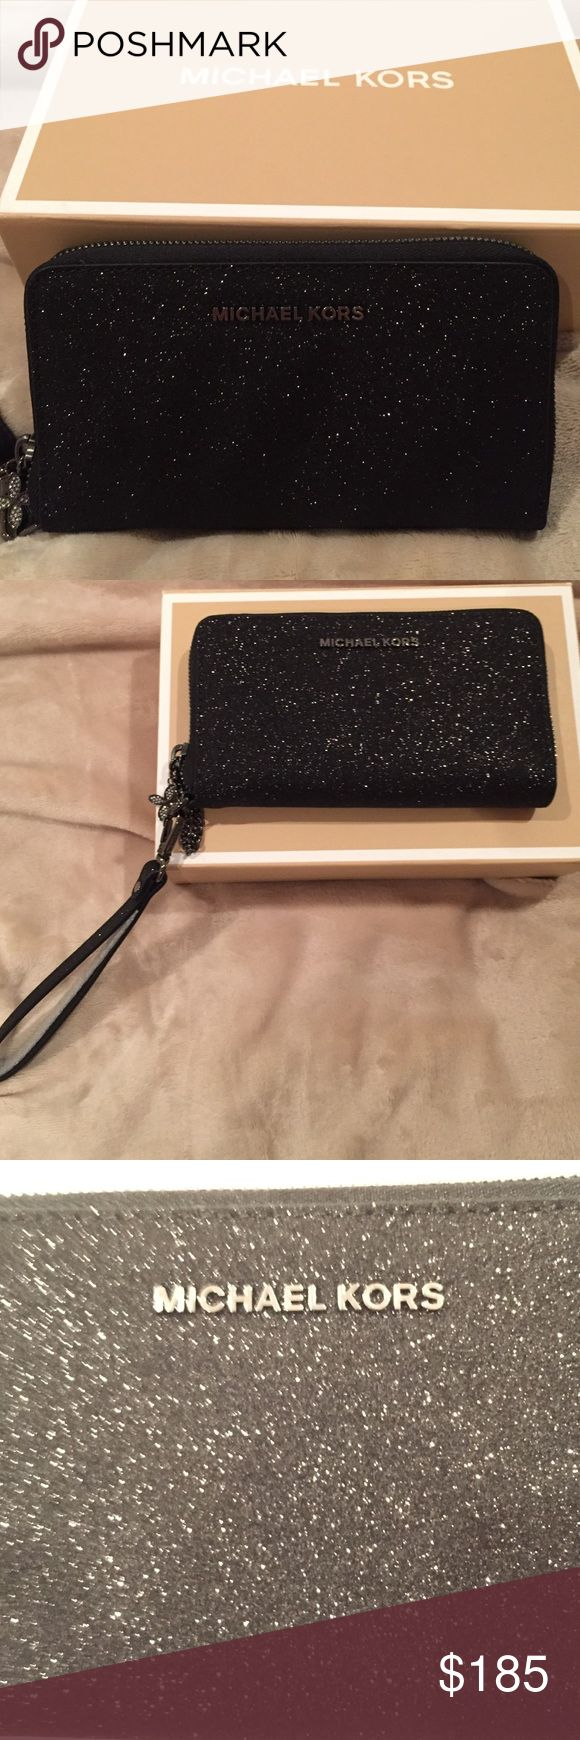 Michael Kors wallet ✨ Black, sparkle, Michael Kors wallet, NEVER USED, perfect condition w/tags  KORS Michael Kors Bags Wallets